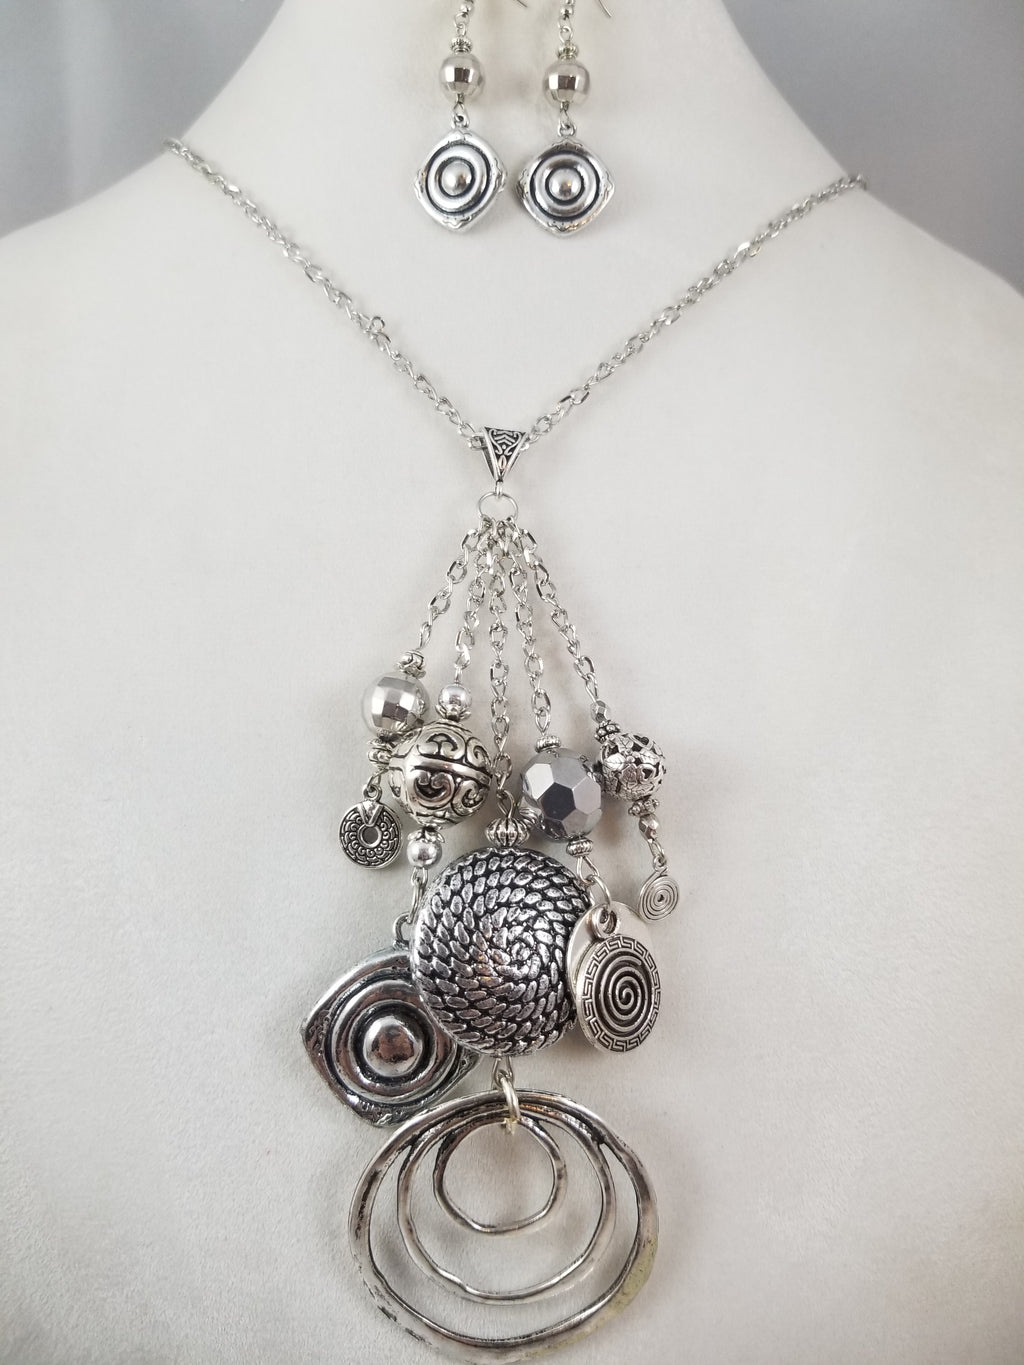 Believed Necklace with Earrings